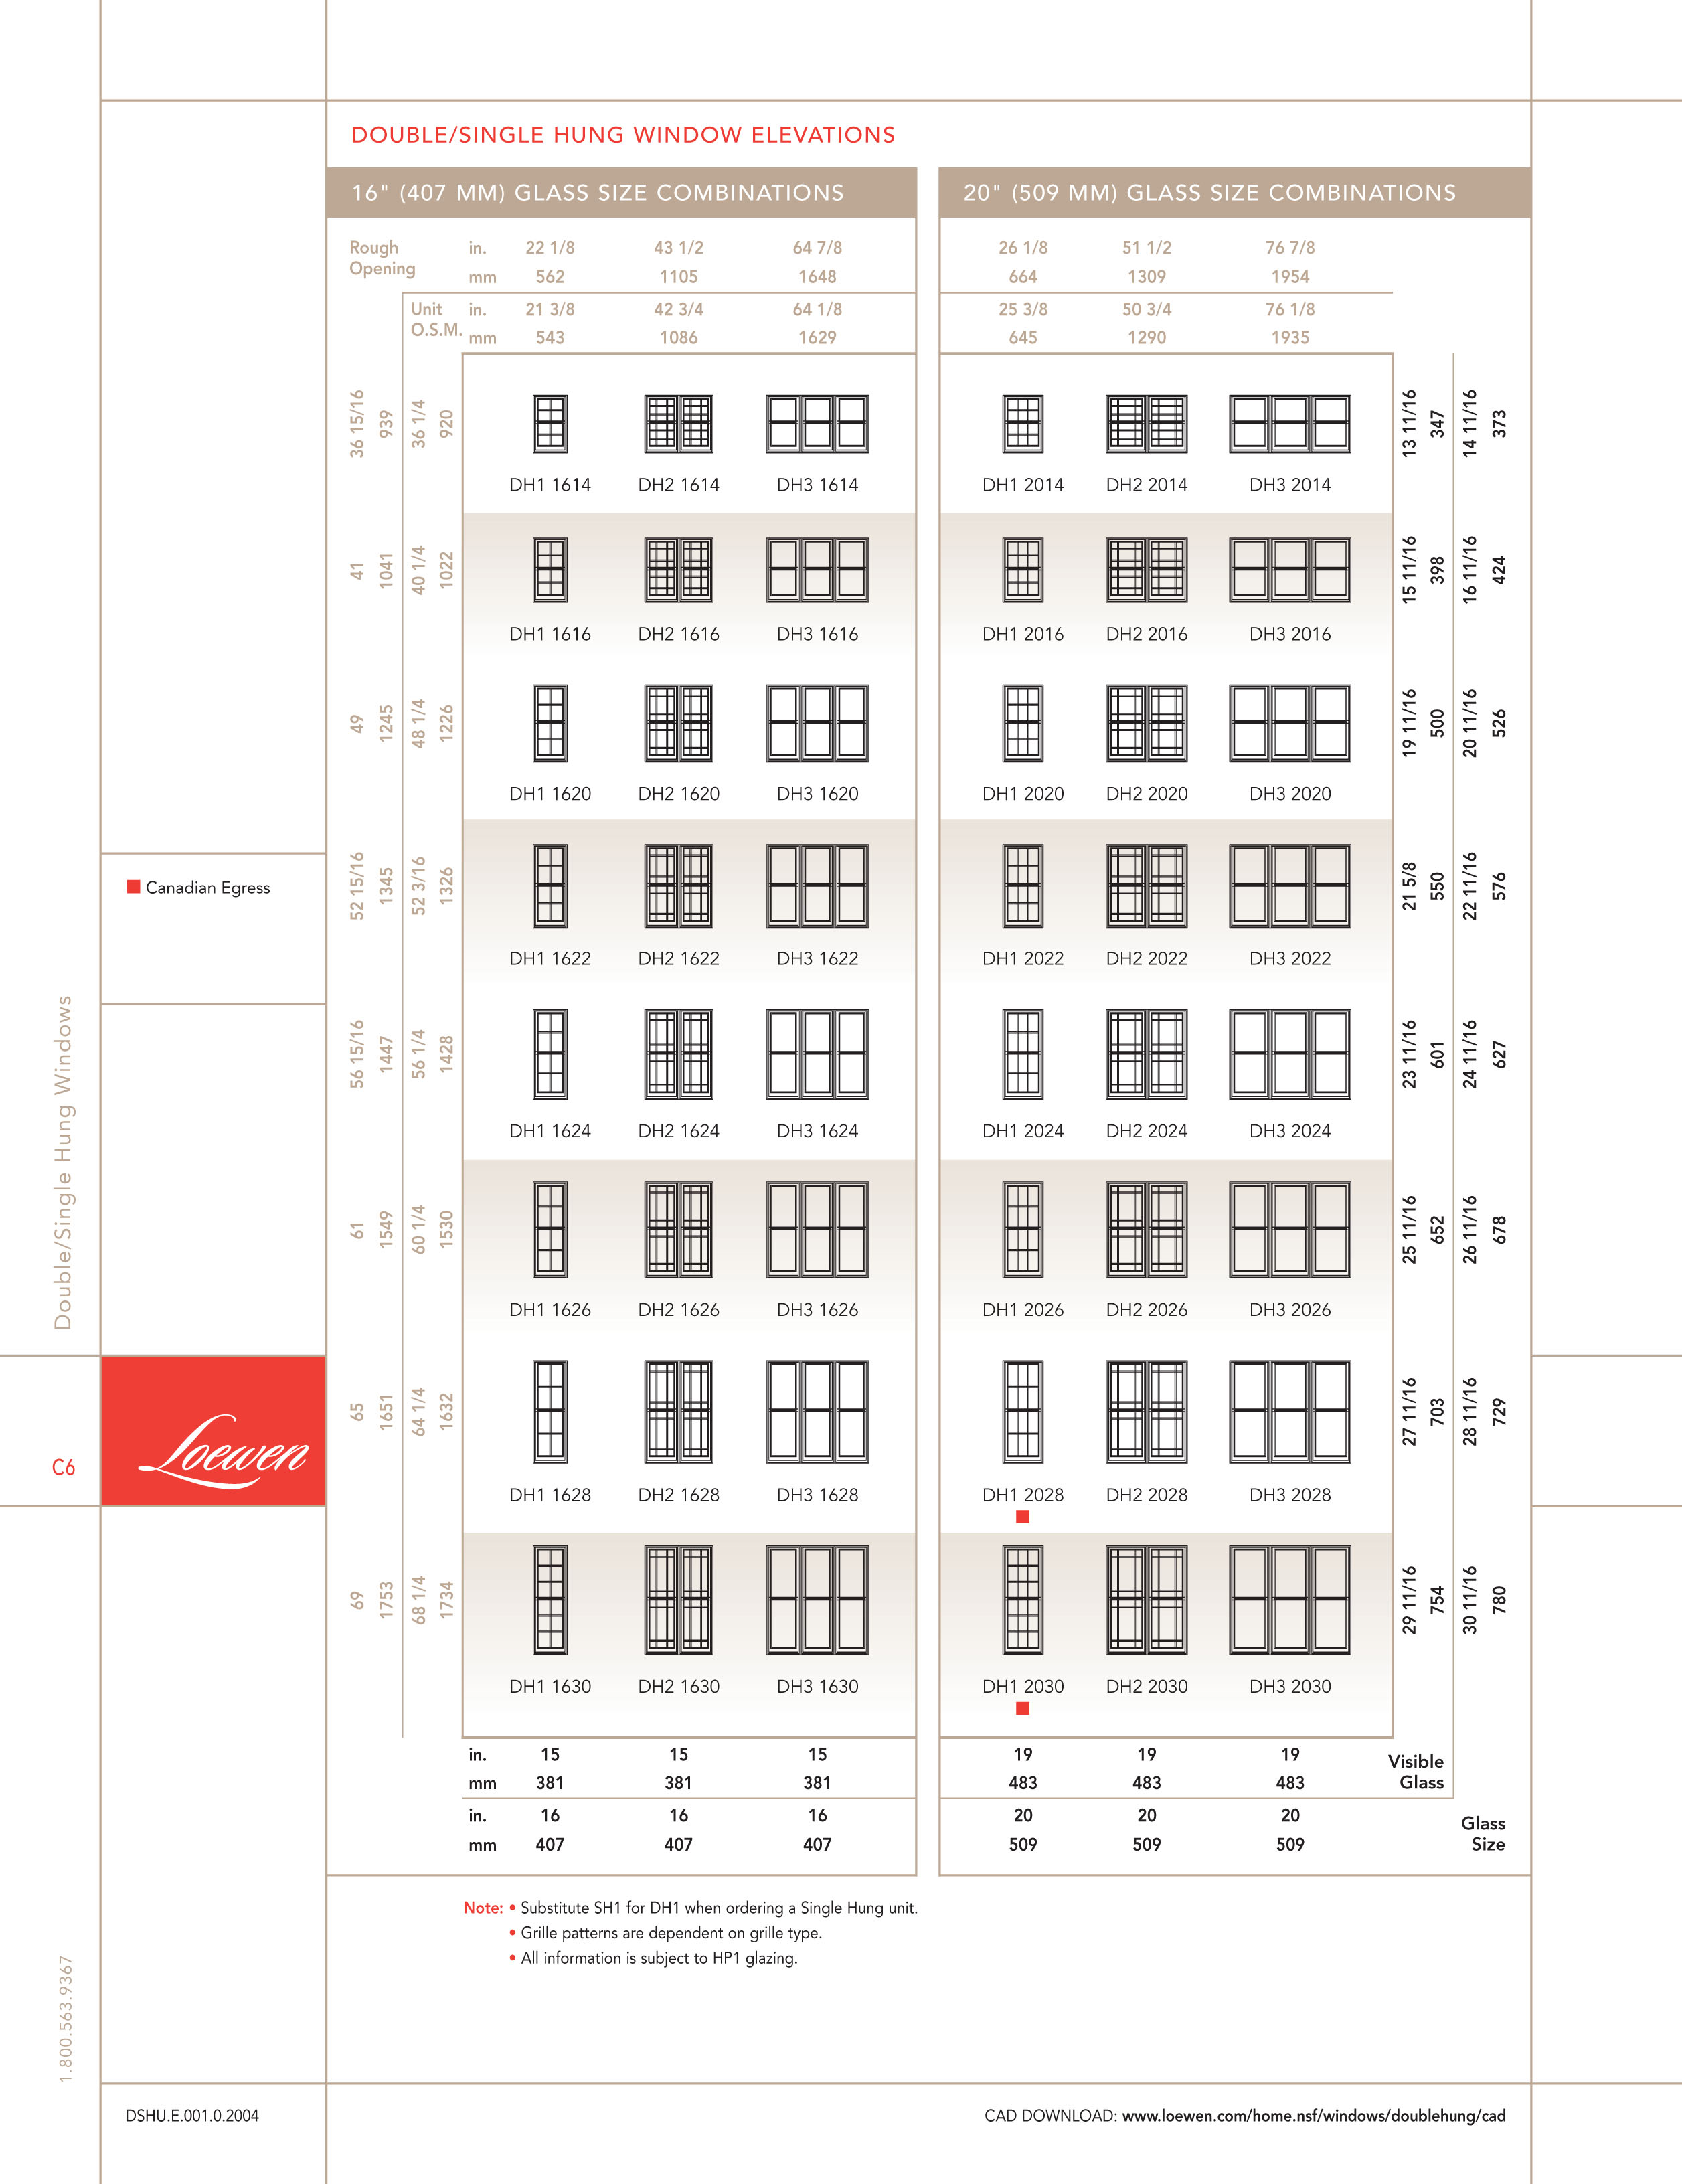 Standard casement window sizes chart image - Check Catalogs From Different Manufacturers Each One Makes Their Double Hung Casement Fixed And Every Other Type A Different Size